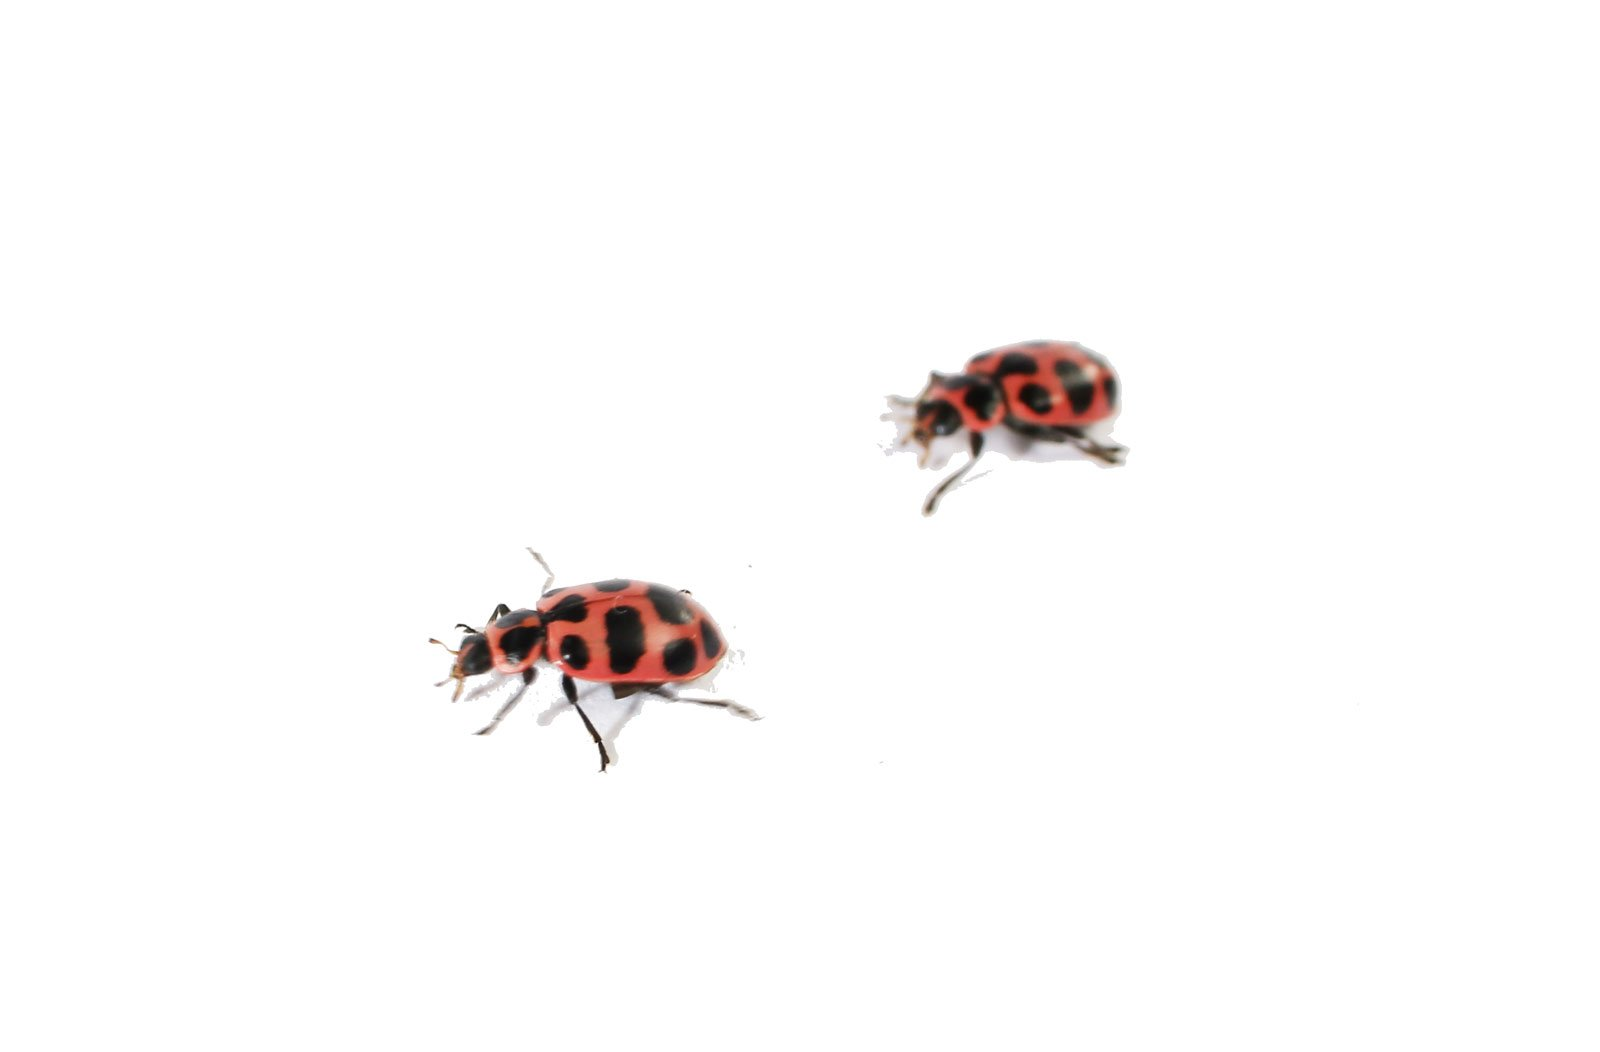 Insect Lore Live Baby Ladybug Larvae - Ladybug Growing Kit REFILL with Ladybug Life Cycle Toy Figurines - SHIP NOW by Insect Lore (Image #6)